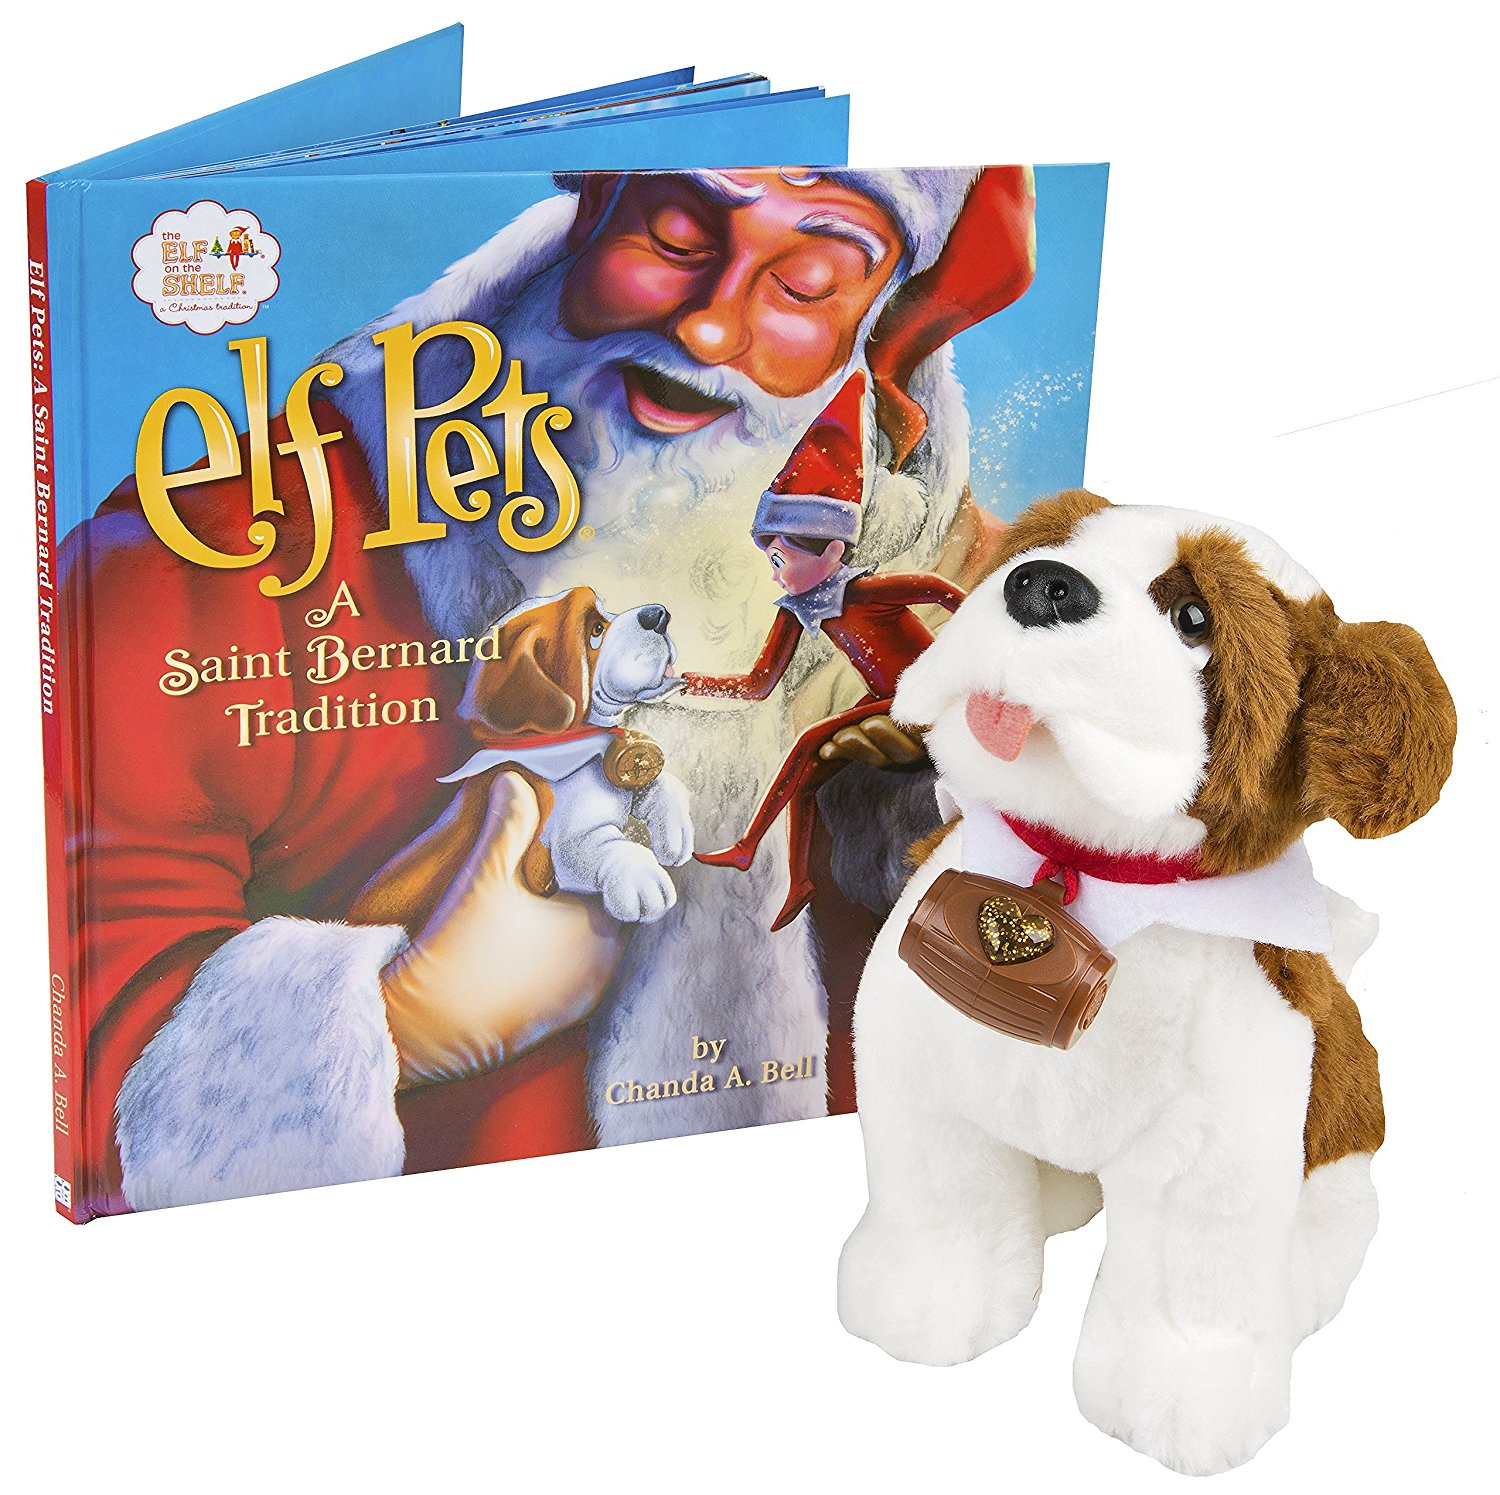 elf on the shelf EF BF BD is back check out these festive shelfie ideas 2